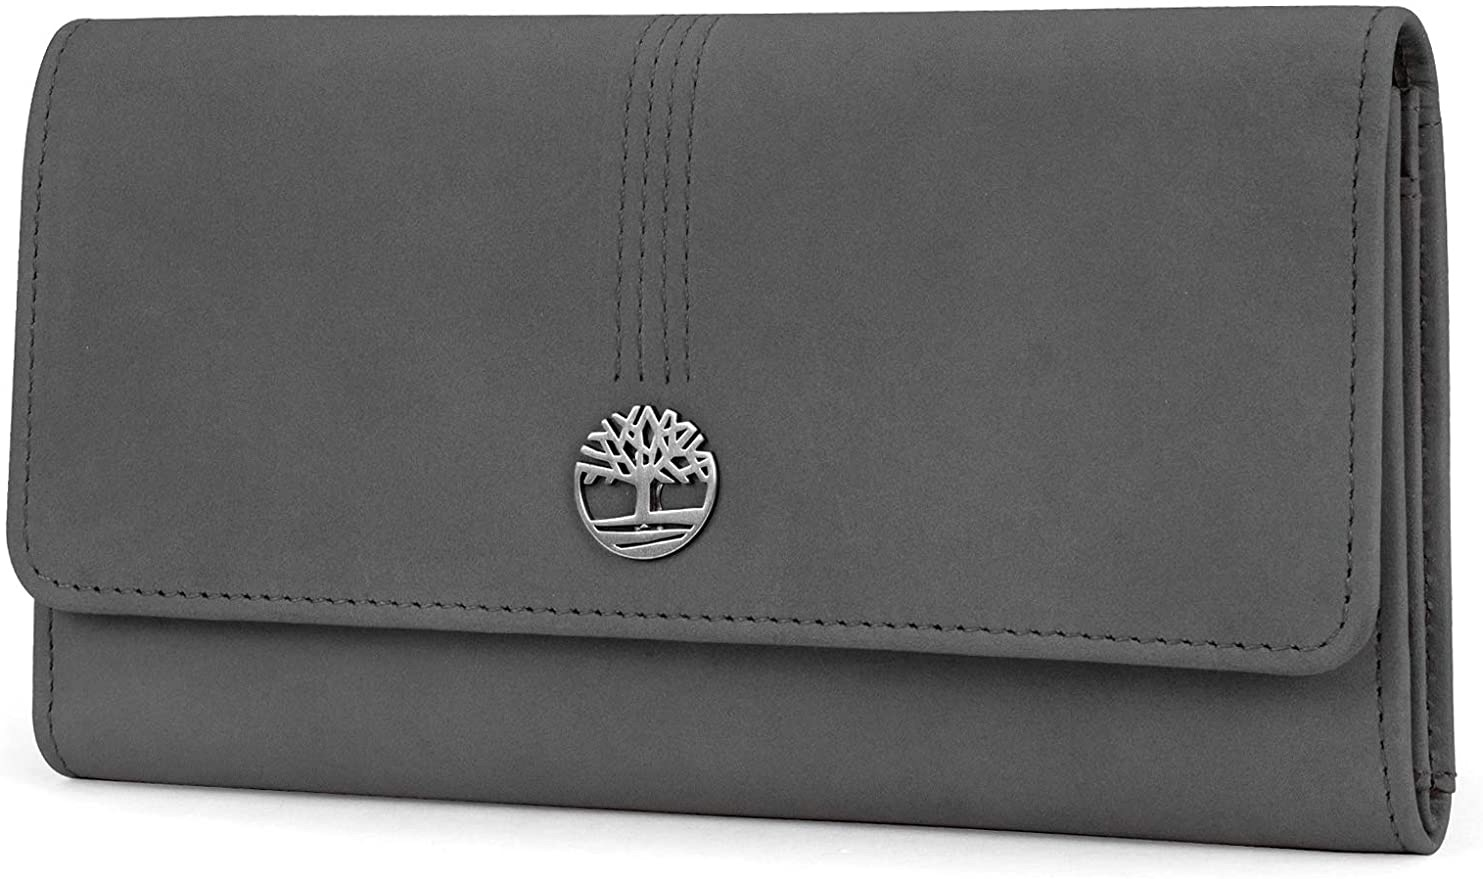 Timberland 女士钱包womens Leather Rfid Flap Clutch Organizer Wallet, Castlerock (Nubuck), One Size US: Shoes